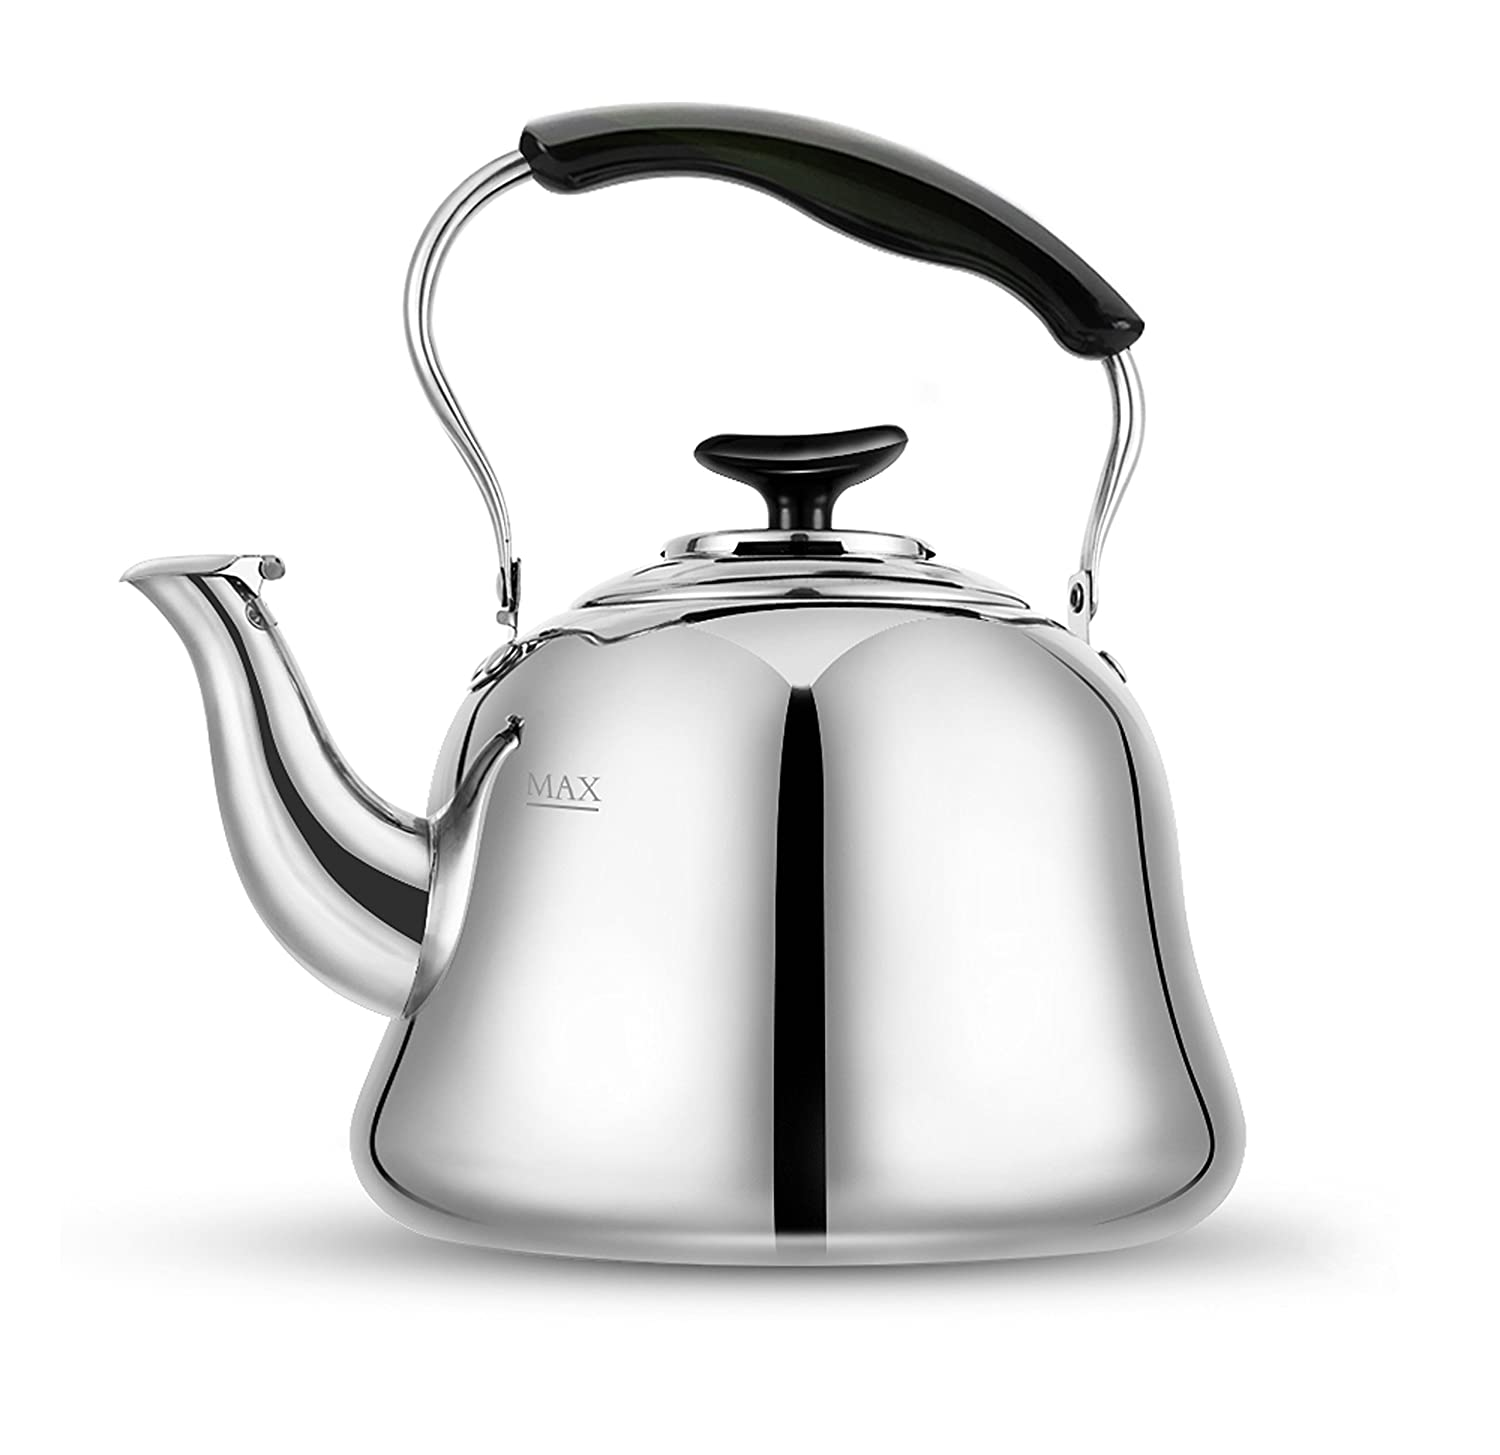 Tea Kettle Stovetop Whistling Teakettle Teapot, Stainless Steel, Thin Base, Mirror Finish, 2 liters